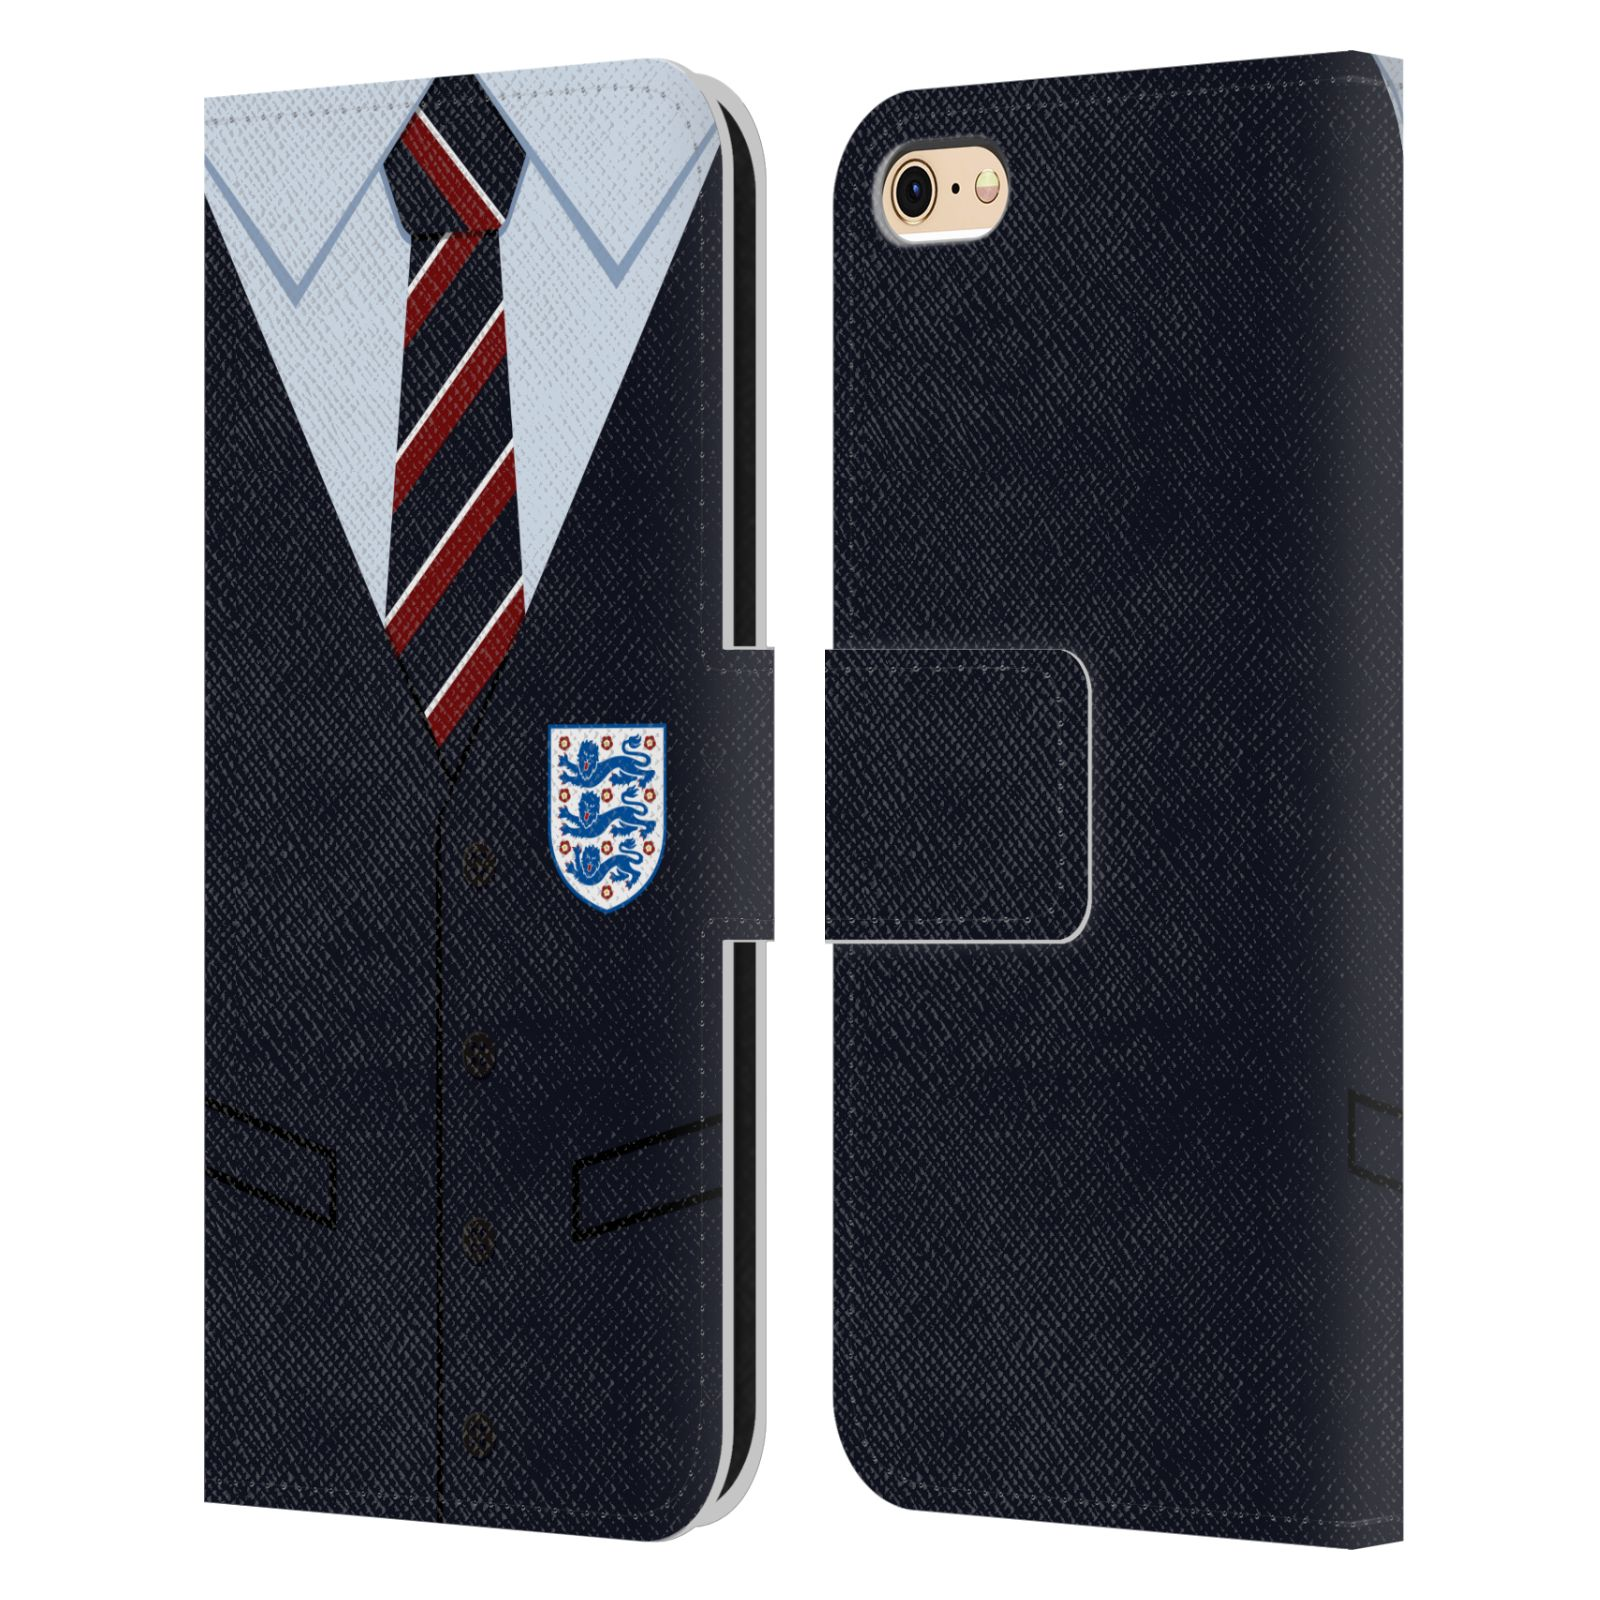 Official England National Football Team 2018/19 Crest Southgate Waistcoat Leather Book Wallet Case For Apple iPhone 6 / iPhone 6s